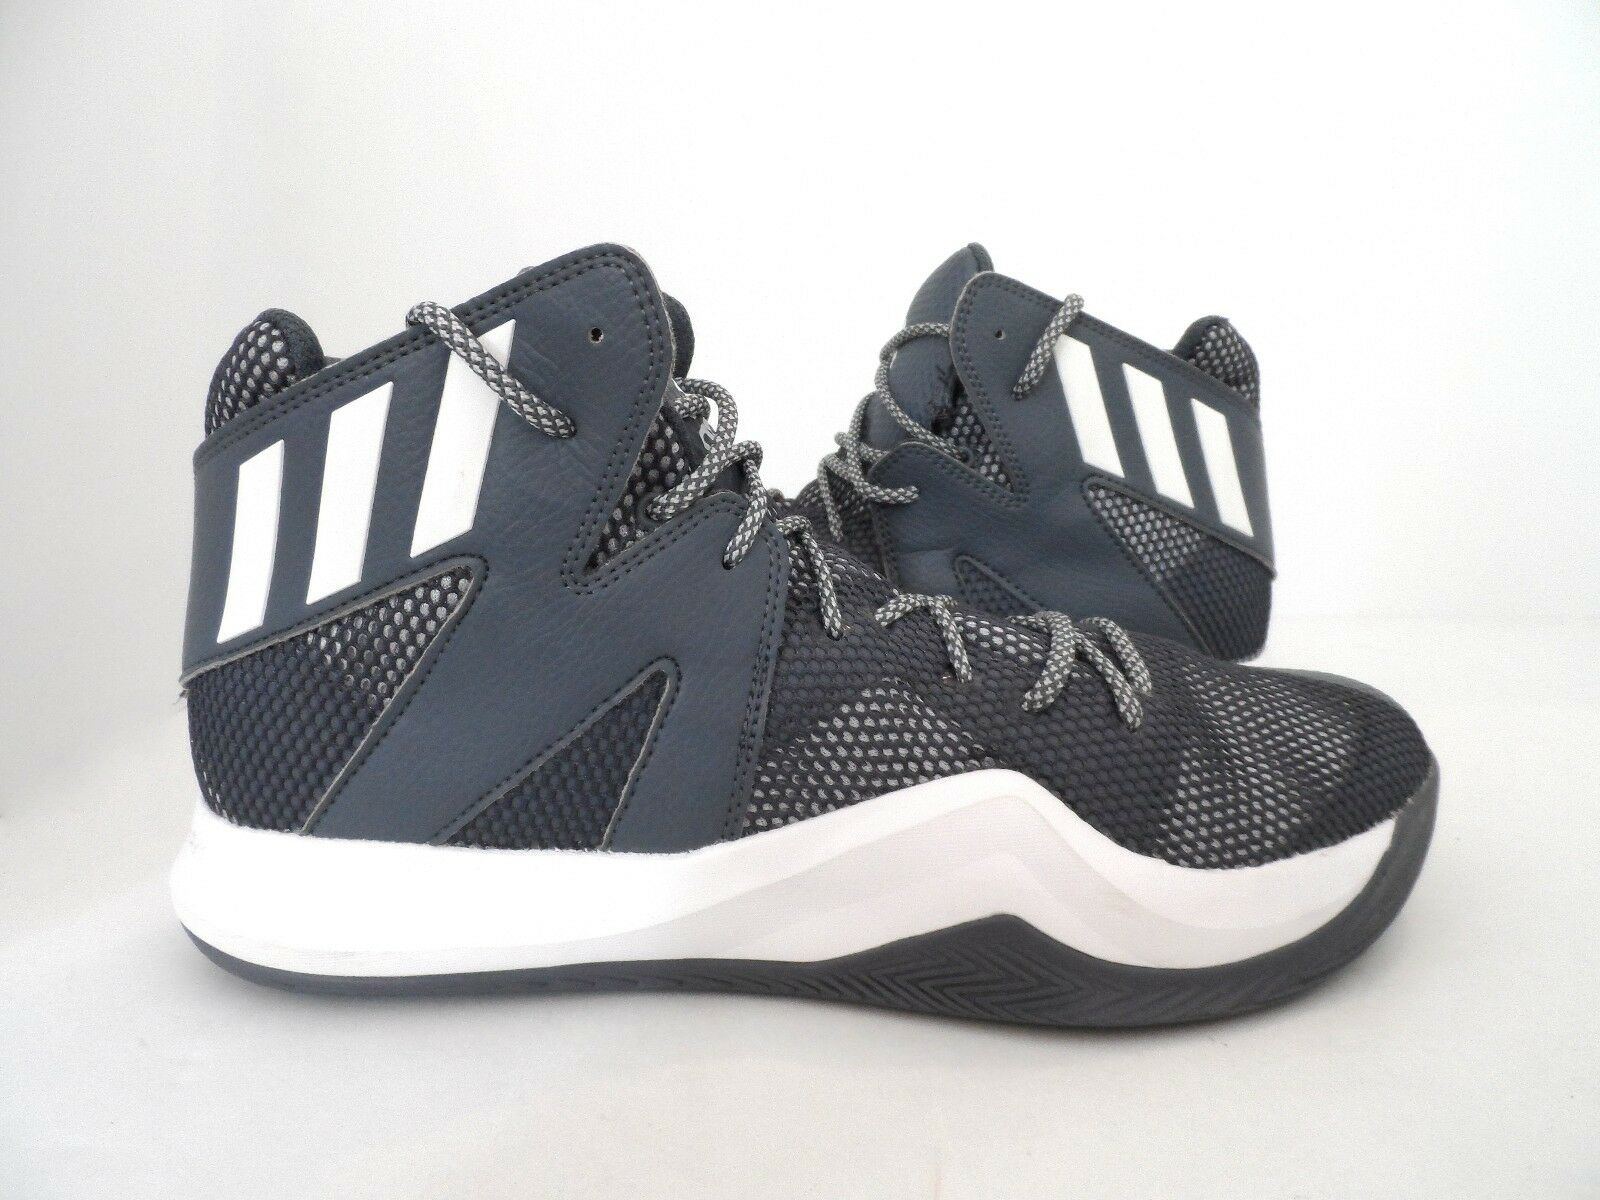 Adidas Men's Crazy Bounce Basketball shoes Onix White LGH Solid Grey Size 11